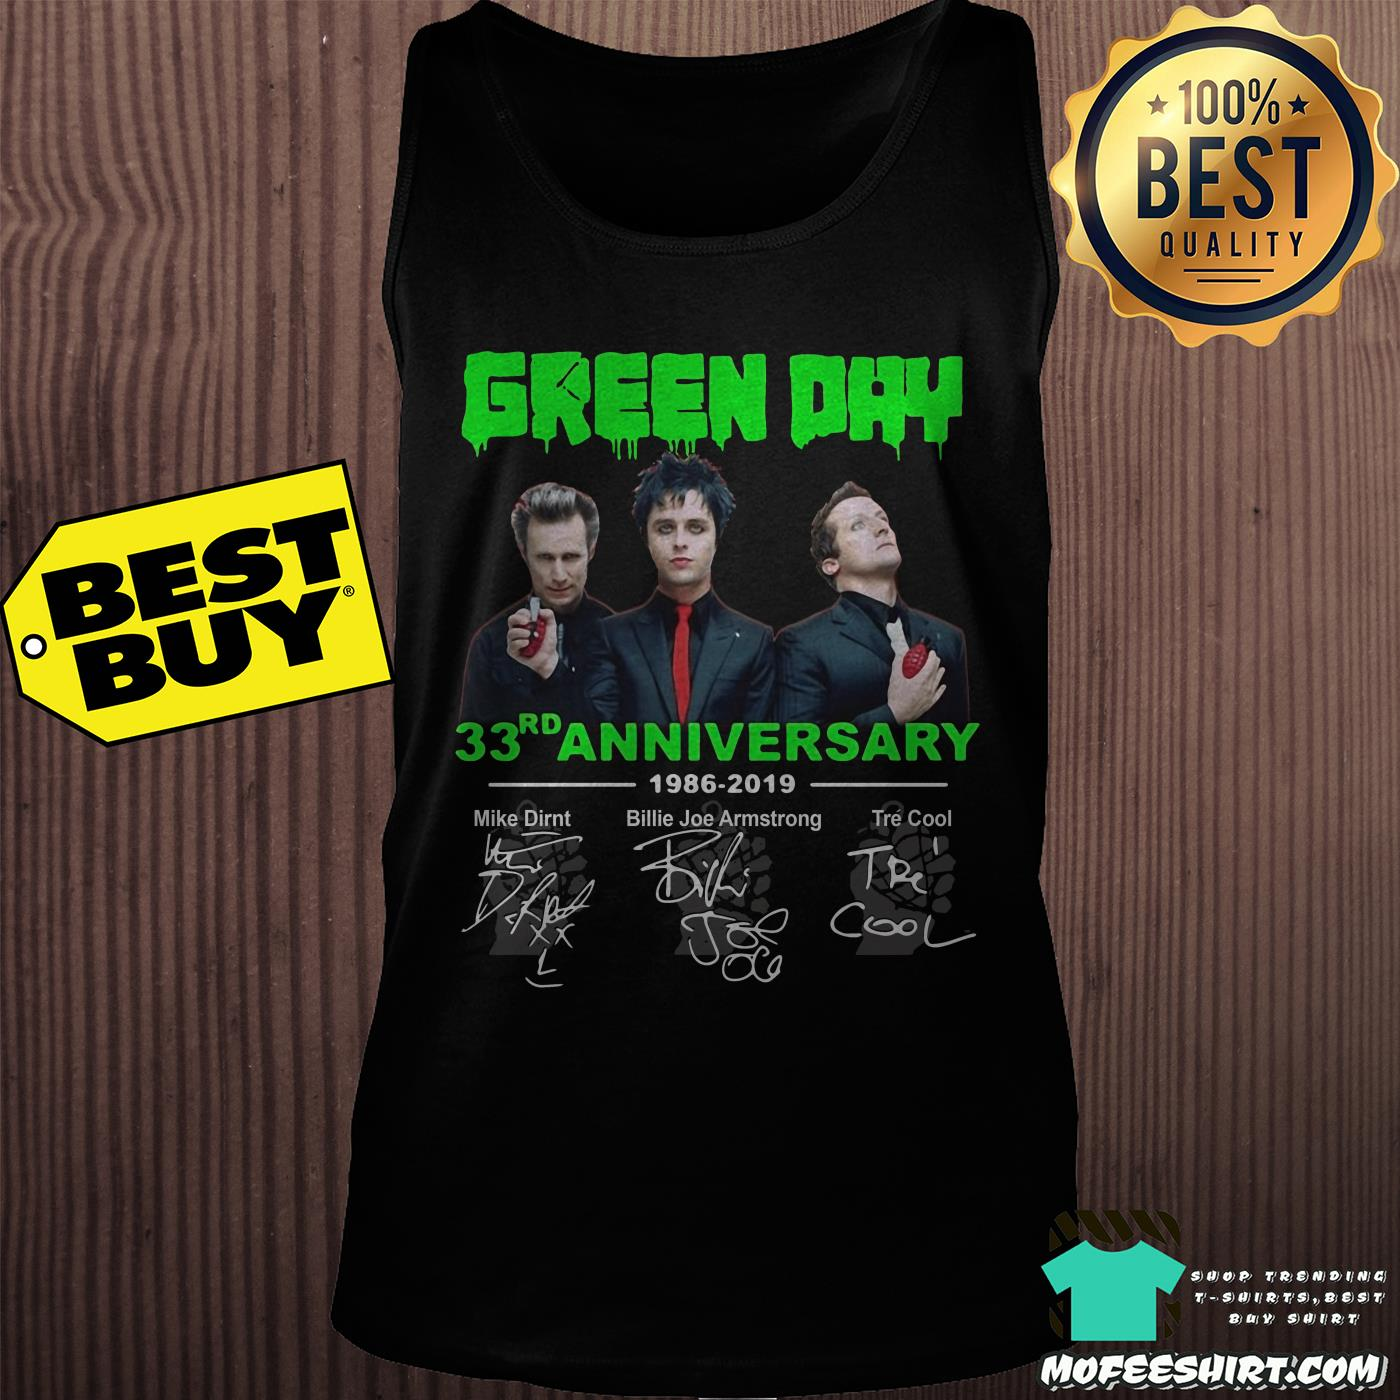 green day 33th anniversary 1986 2019 signatures tank top - Green Day 33rd Anniversary 1986-2019 signatures shirt